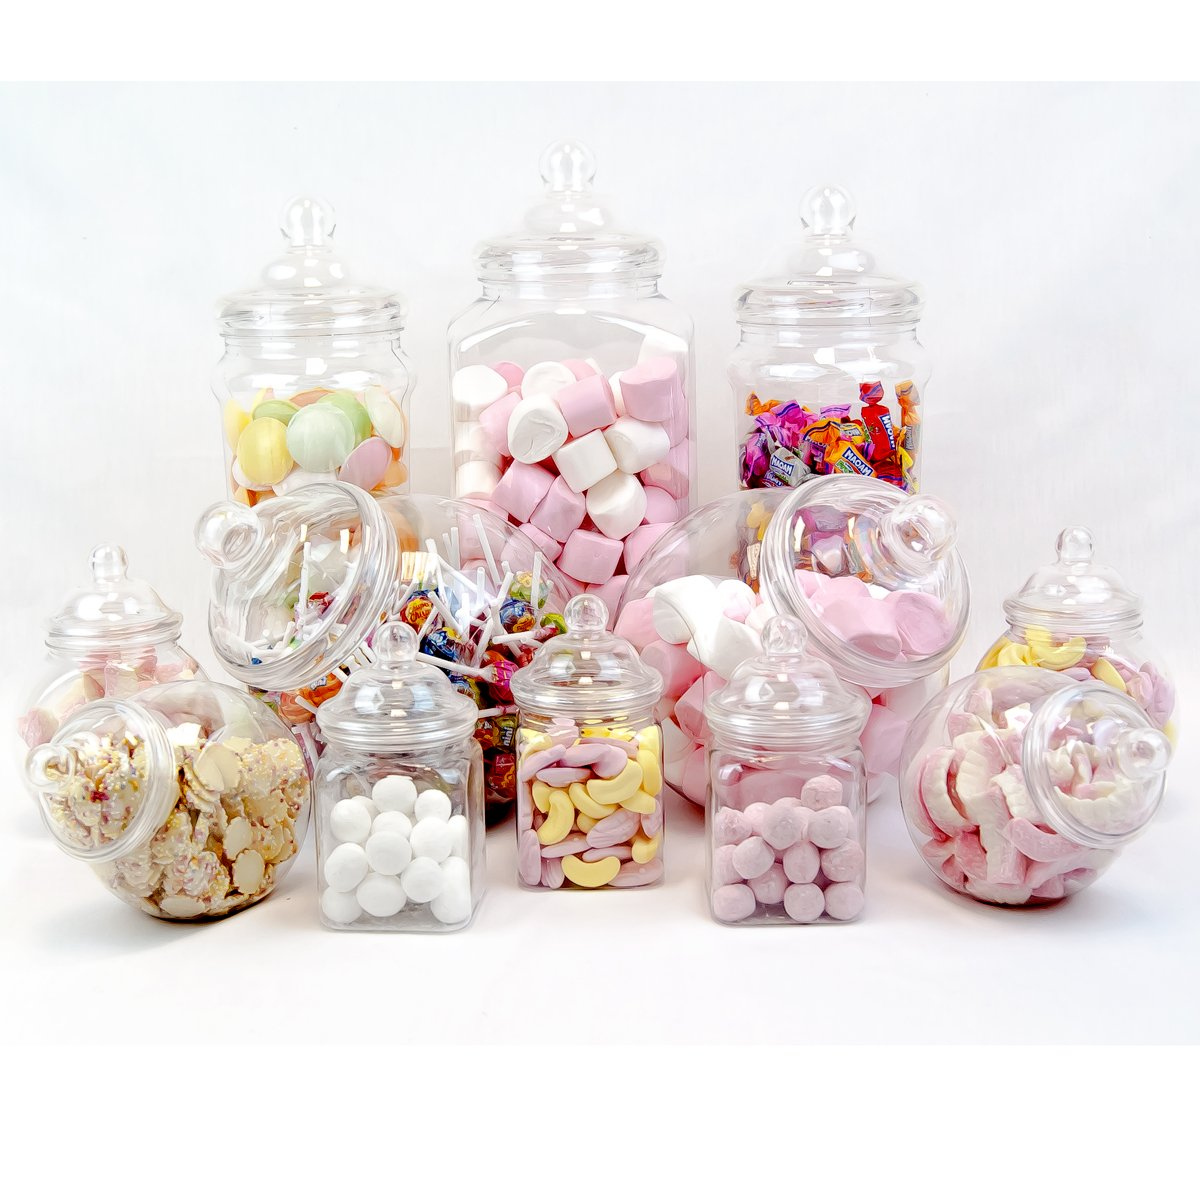 12 Jar Vintage Victorian Pick & Mix Sweet Shop Candy Buffet Kit Party Pack by Top Star